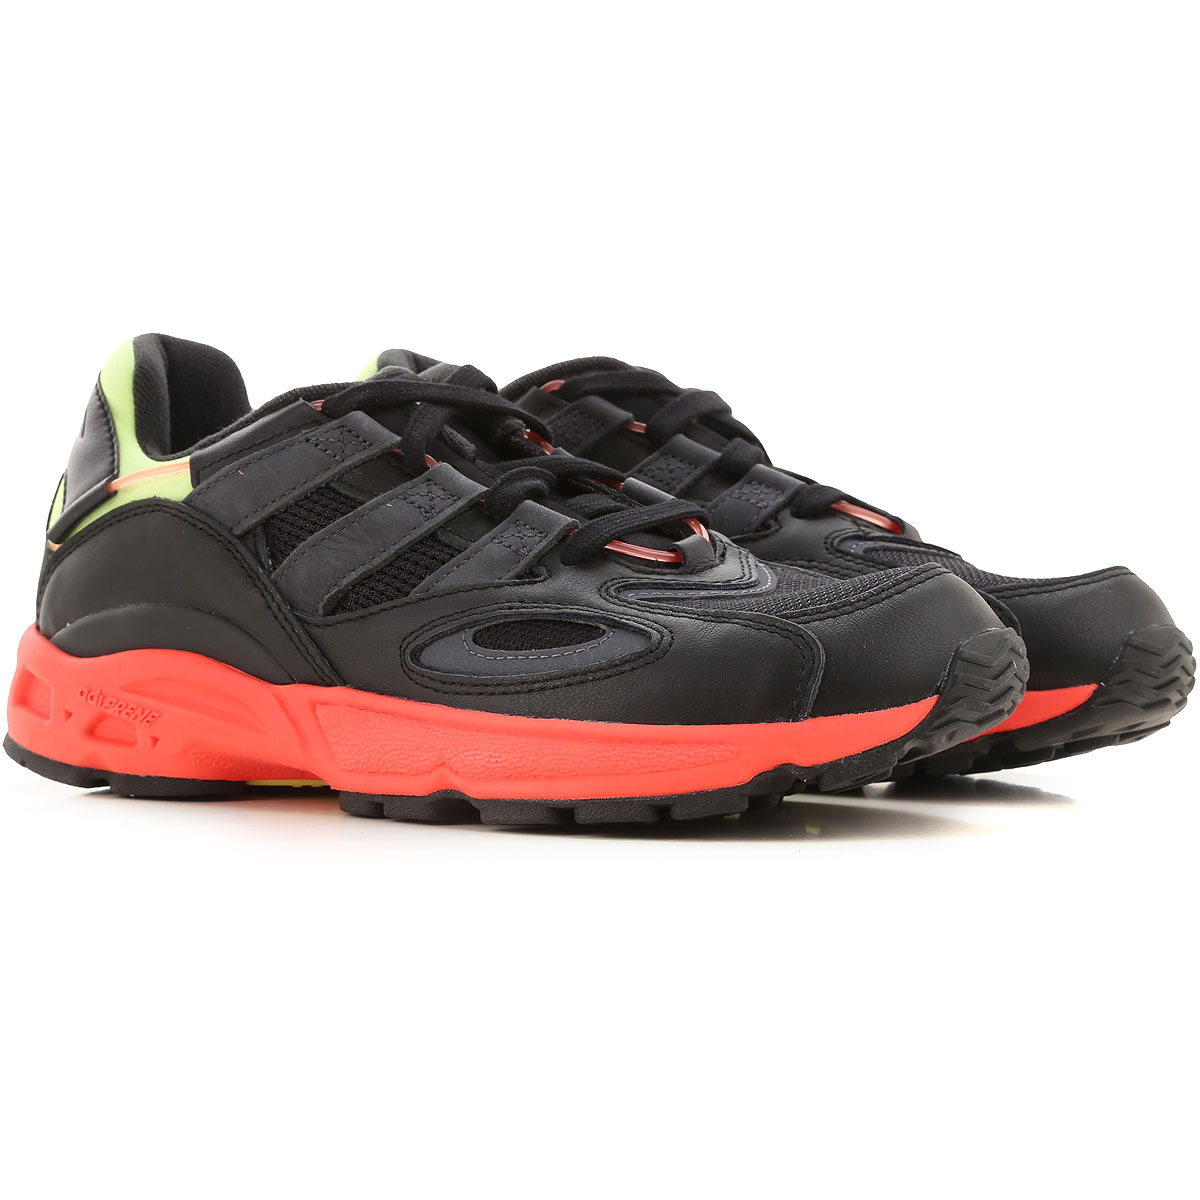 Adidas Sneakers for Men On Sale in Outlet, Black, Leather, 2019, 7